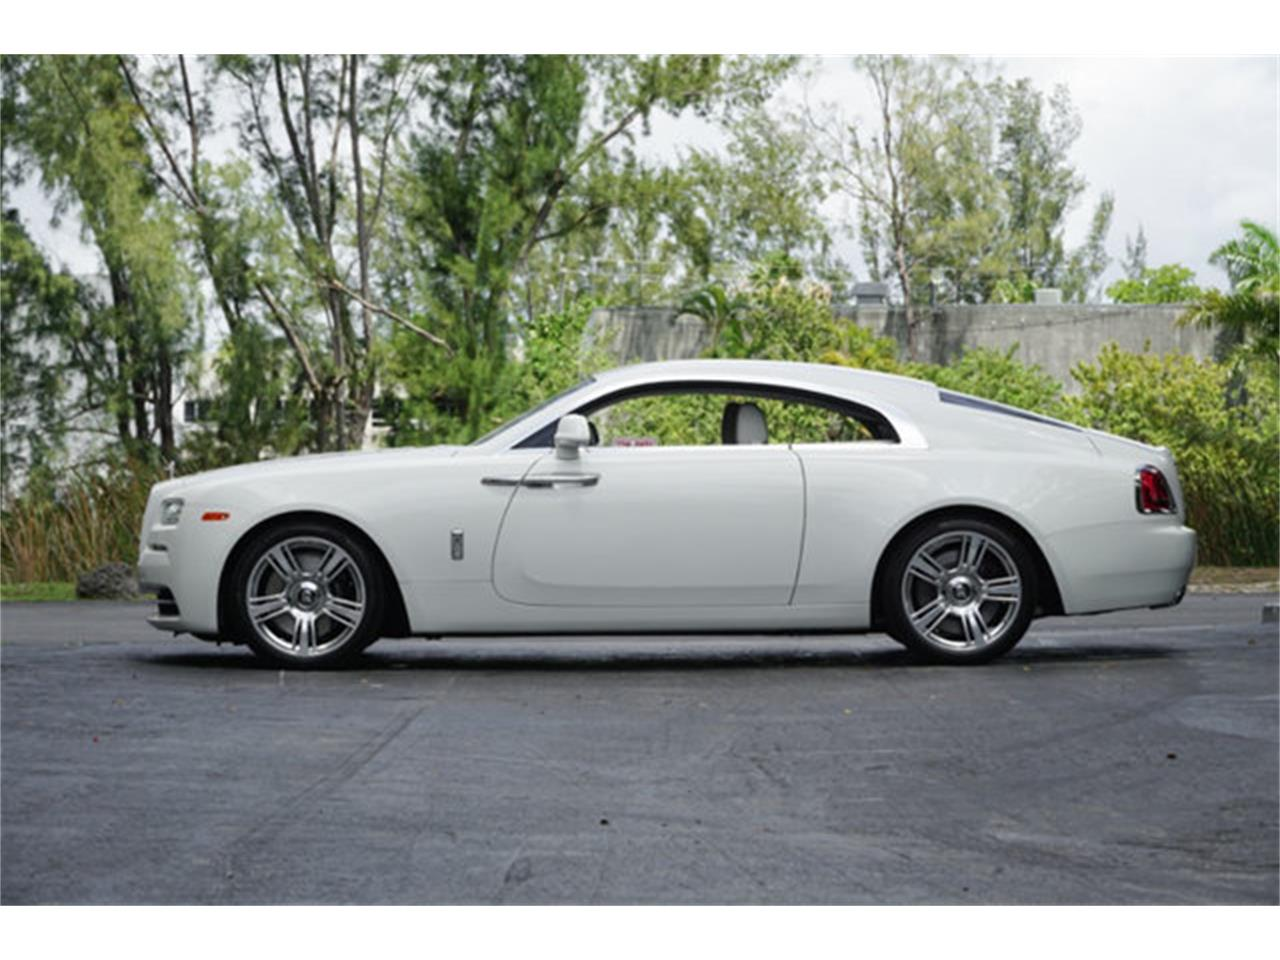 Large Picture of '16 Silver Wraith located in Miami Florida - $224,900.00 - Q2NQ